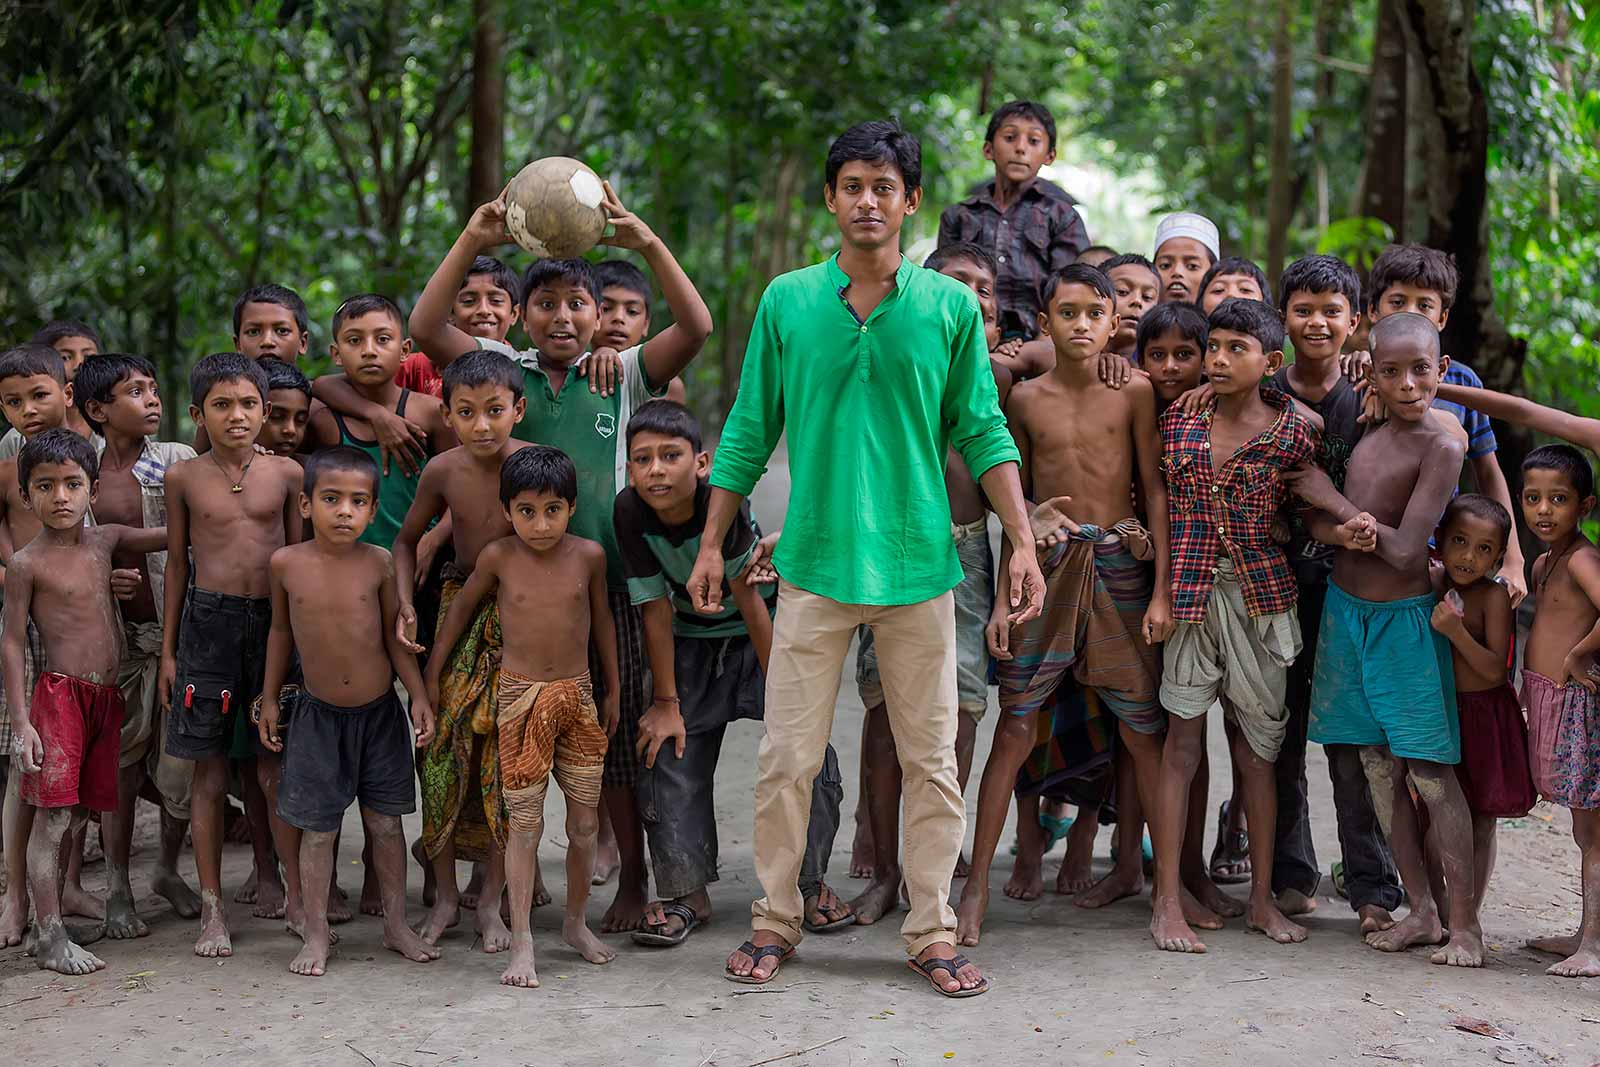 group-of-children-playing-football-swarupkathi-bangladesh